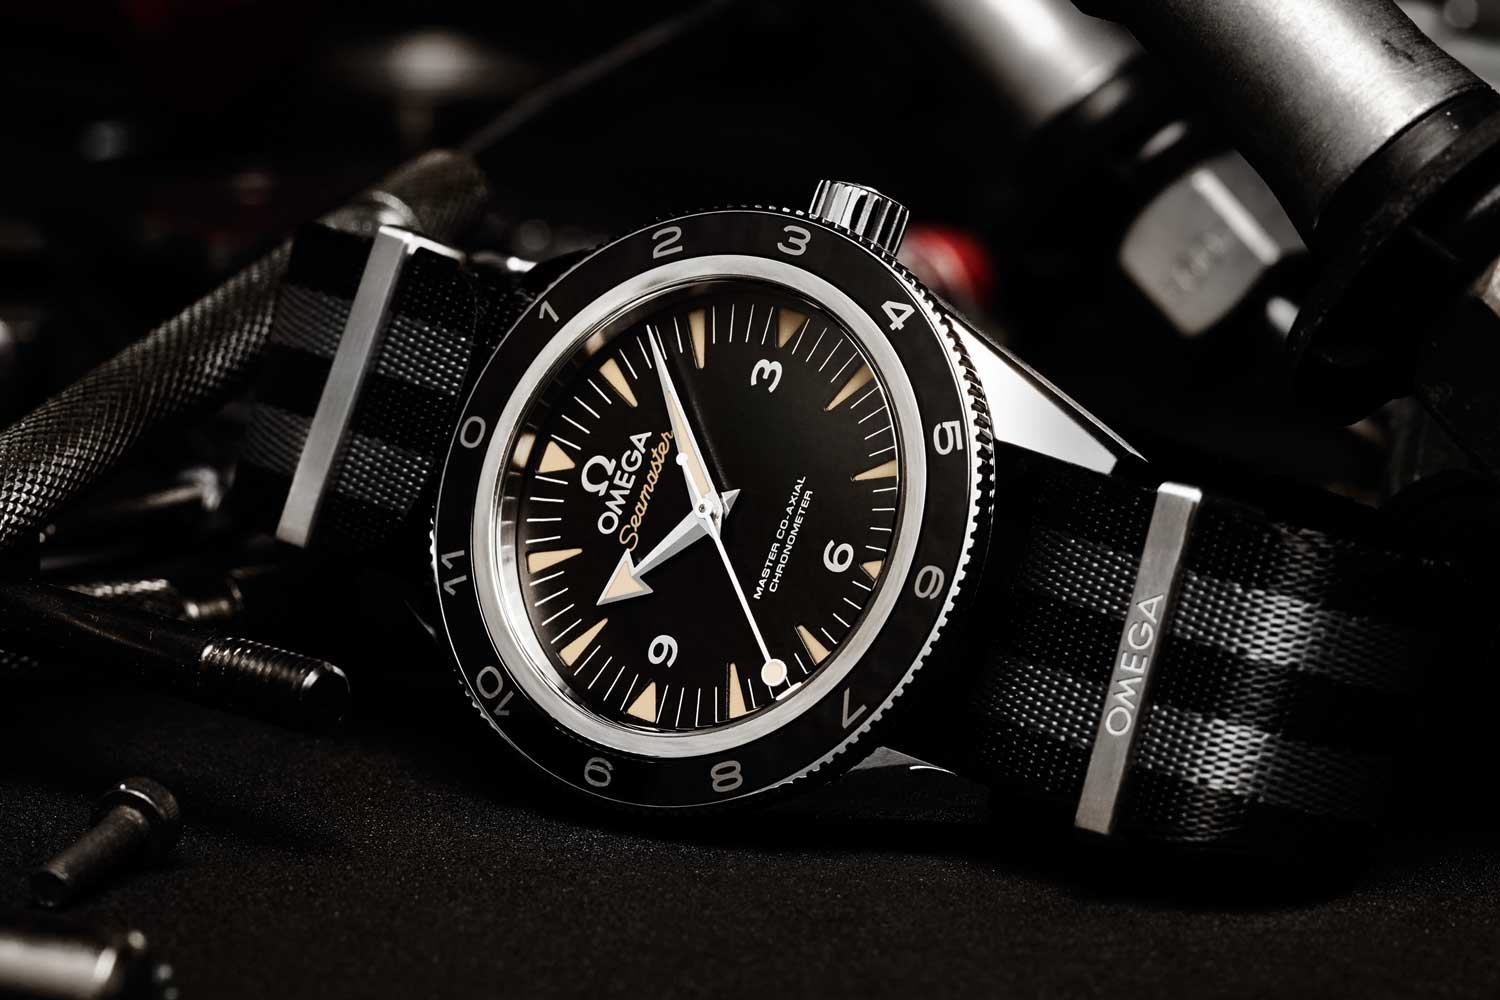 The Omega Seamaster 300 Master Chronometer Spectre Edition made for Bond in the Spectre (2015) instalment